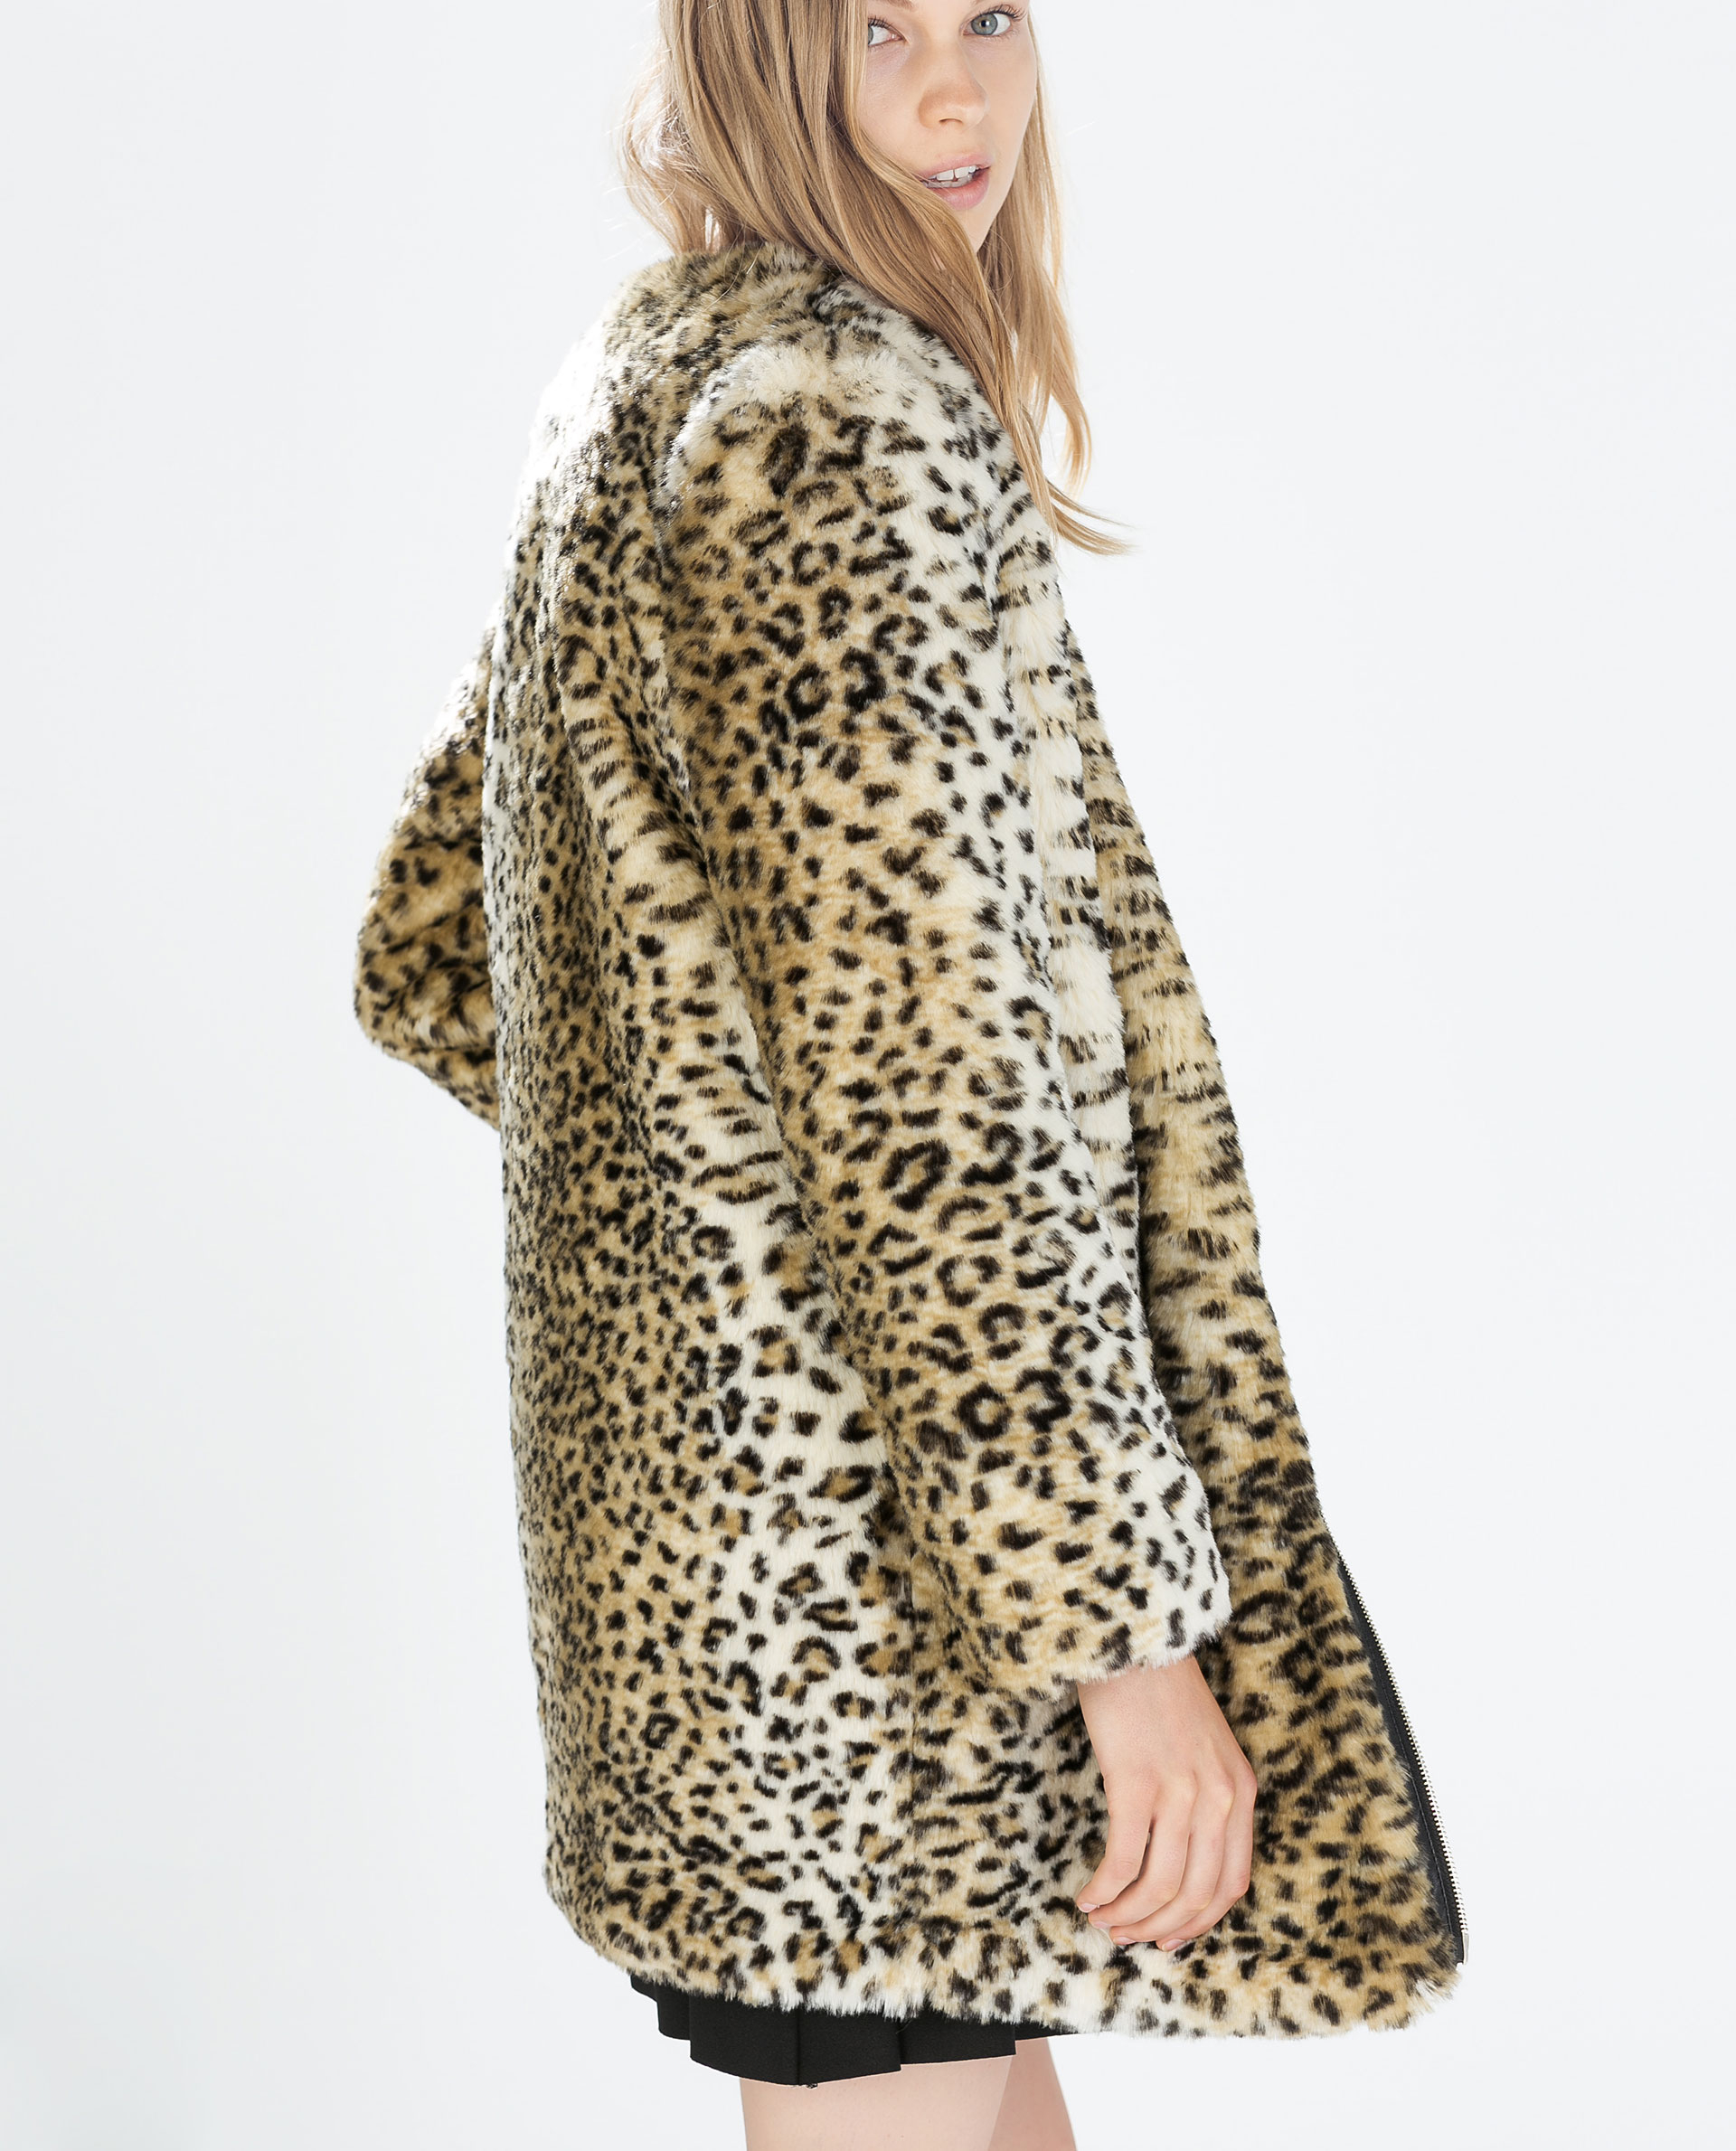 Exciting Doina Ciobanu Zara Leopard Faux Fur Scarf Chemistry Look